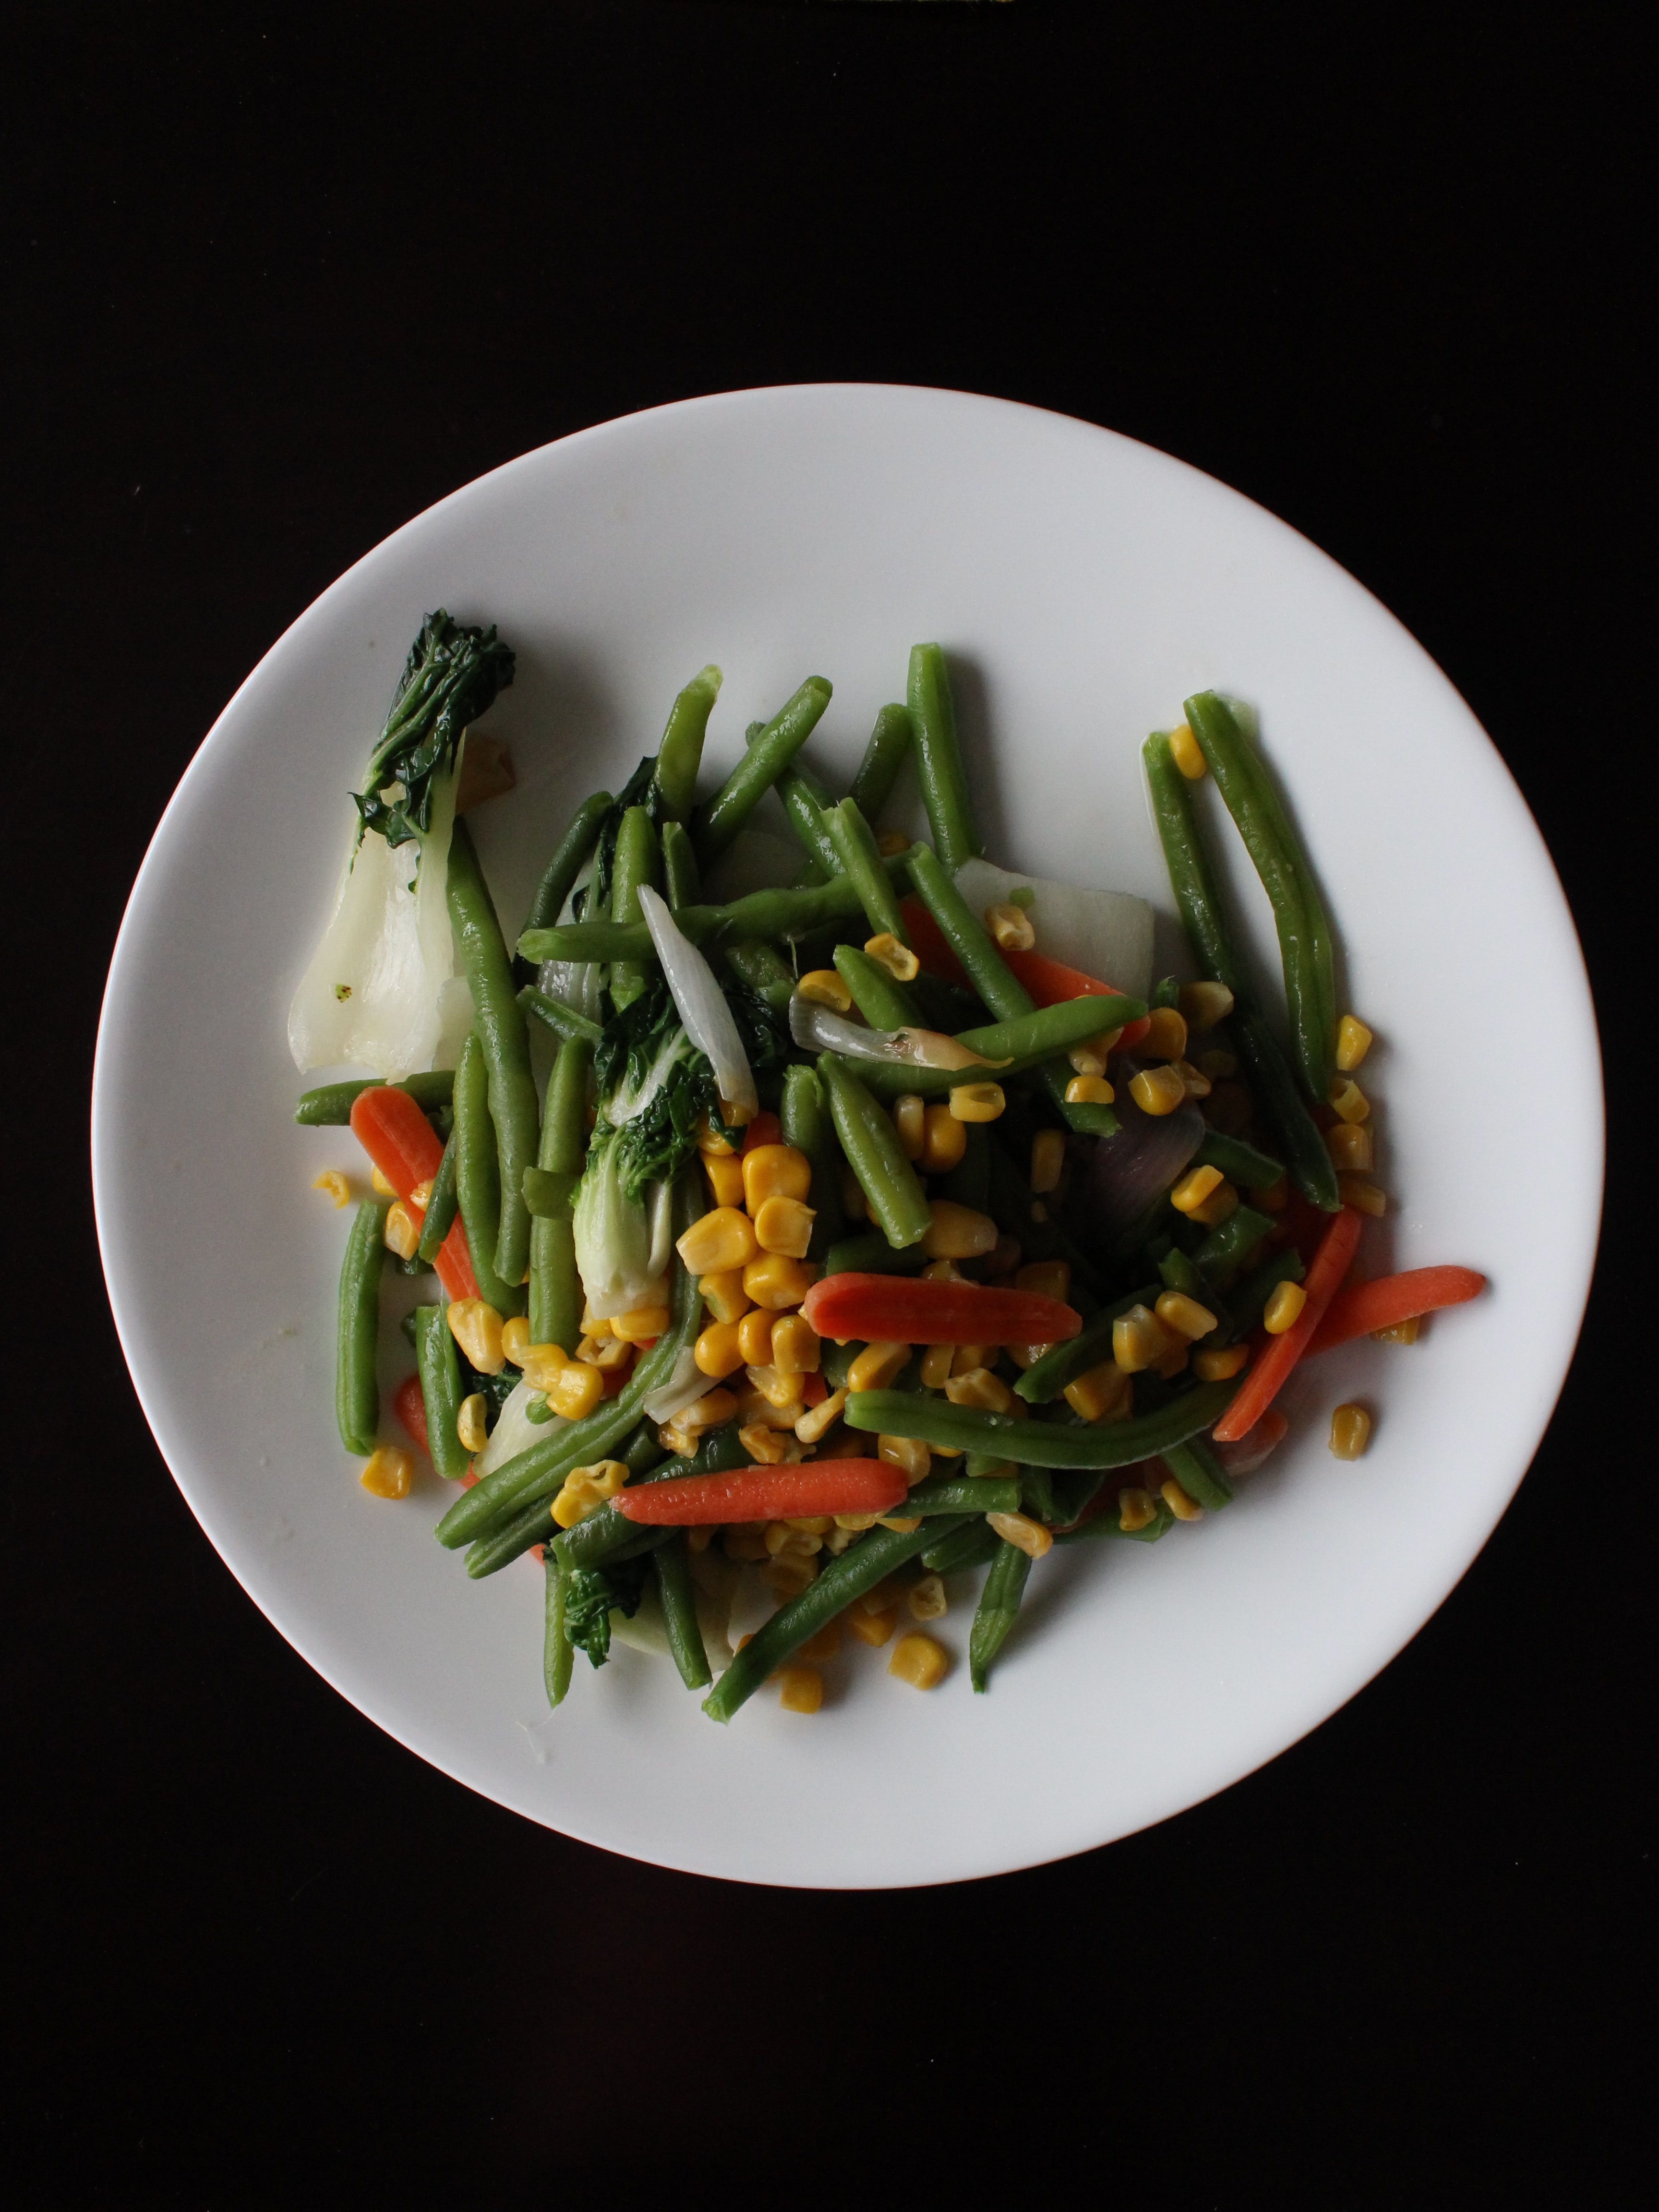 A white plate full of green beans, corn, carrots, and bok choy